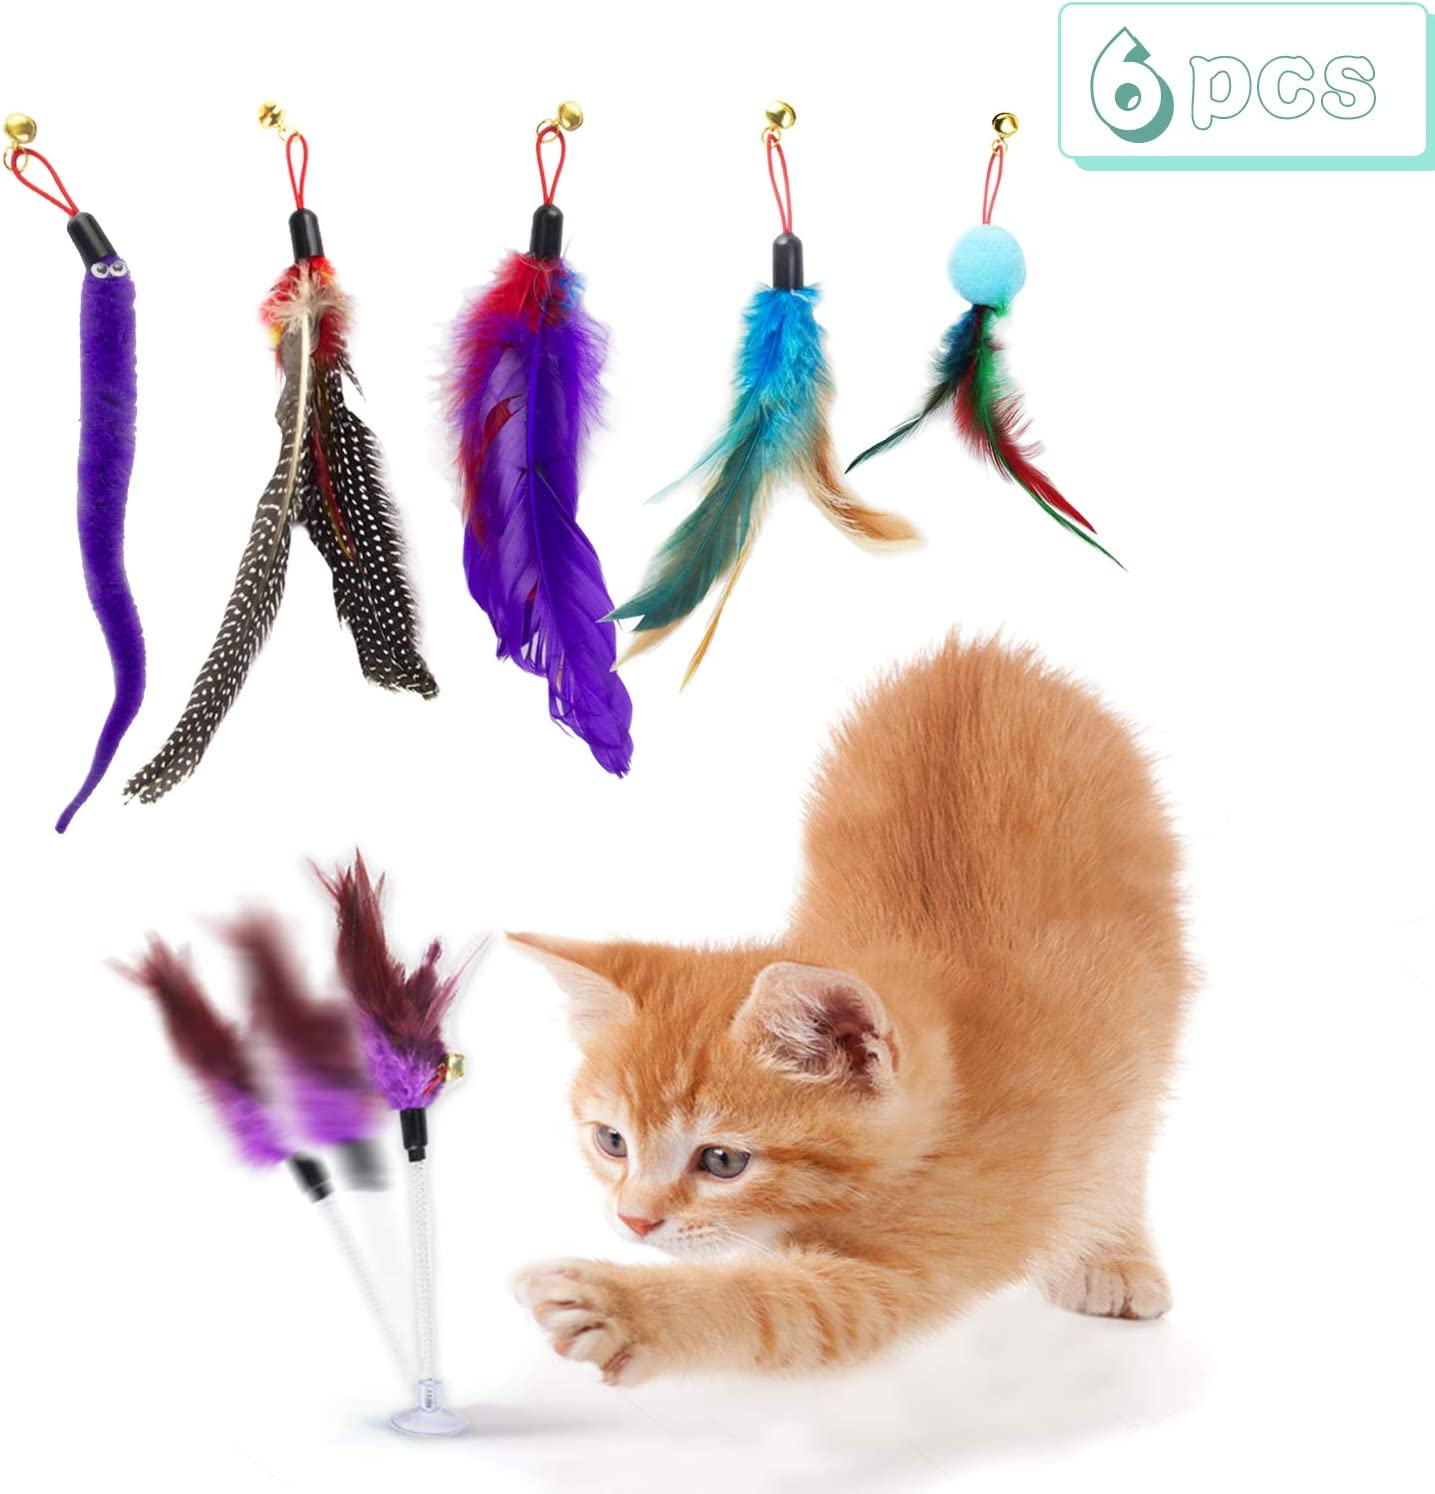 Colorful Springs Crinkle Balls Cat Toy YUN HOME 14Pcs Interactive Kitten Toys Assortments for Indoor Pets 2 Way Tunnel Fluffy Mice for Cat Puppy Kitty Replacement Feather Teaser with Bell Kitten Wand